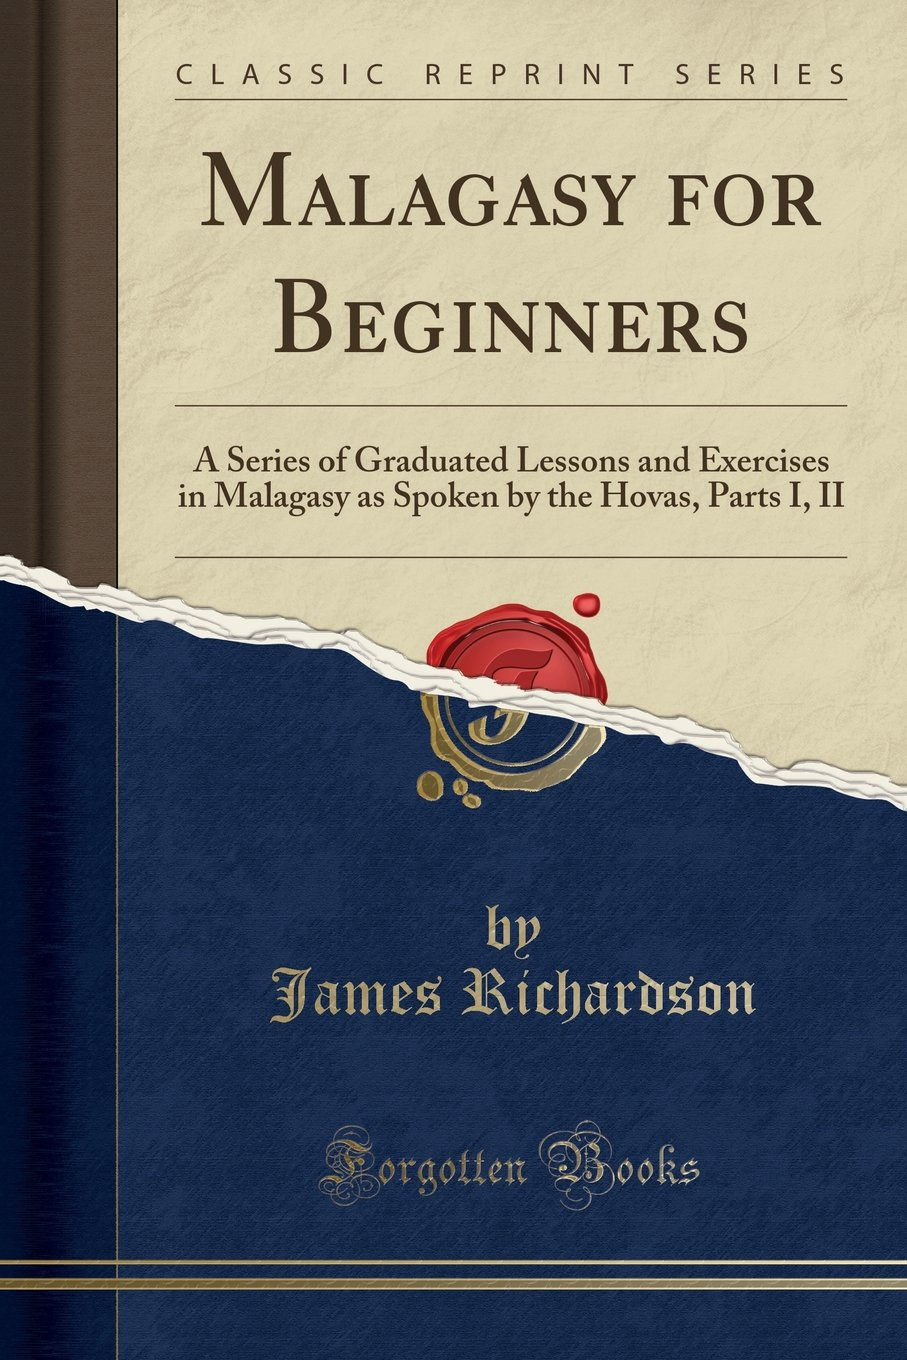 Malagasy for Beginners: A Series of Graduated Lessons and Exercises in Malagasy as Spoken by the Hovas, Parts I, II (Classic Reprint) PDF